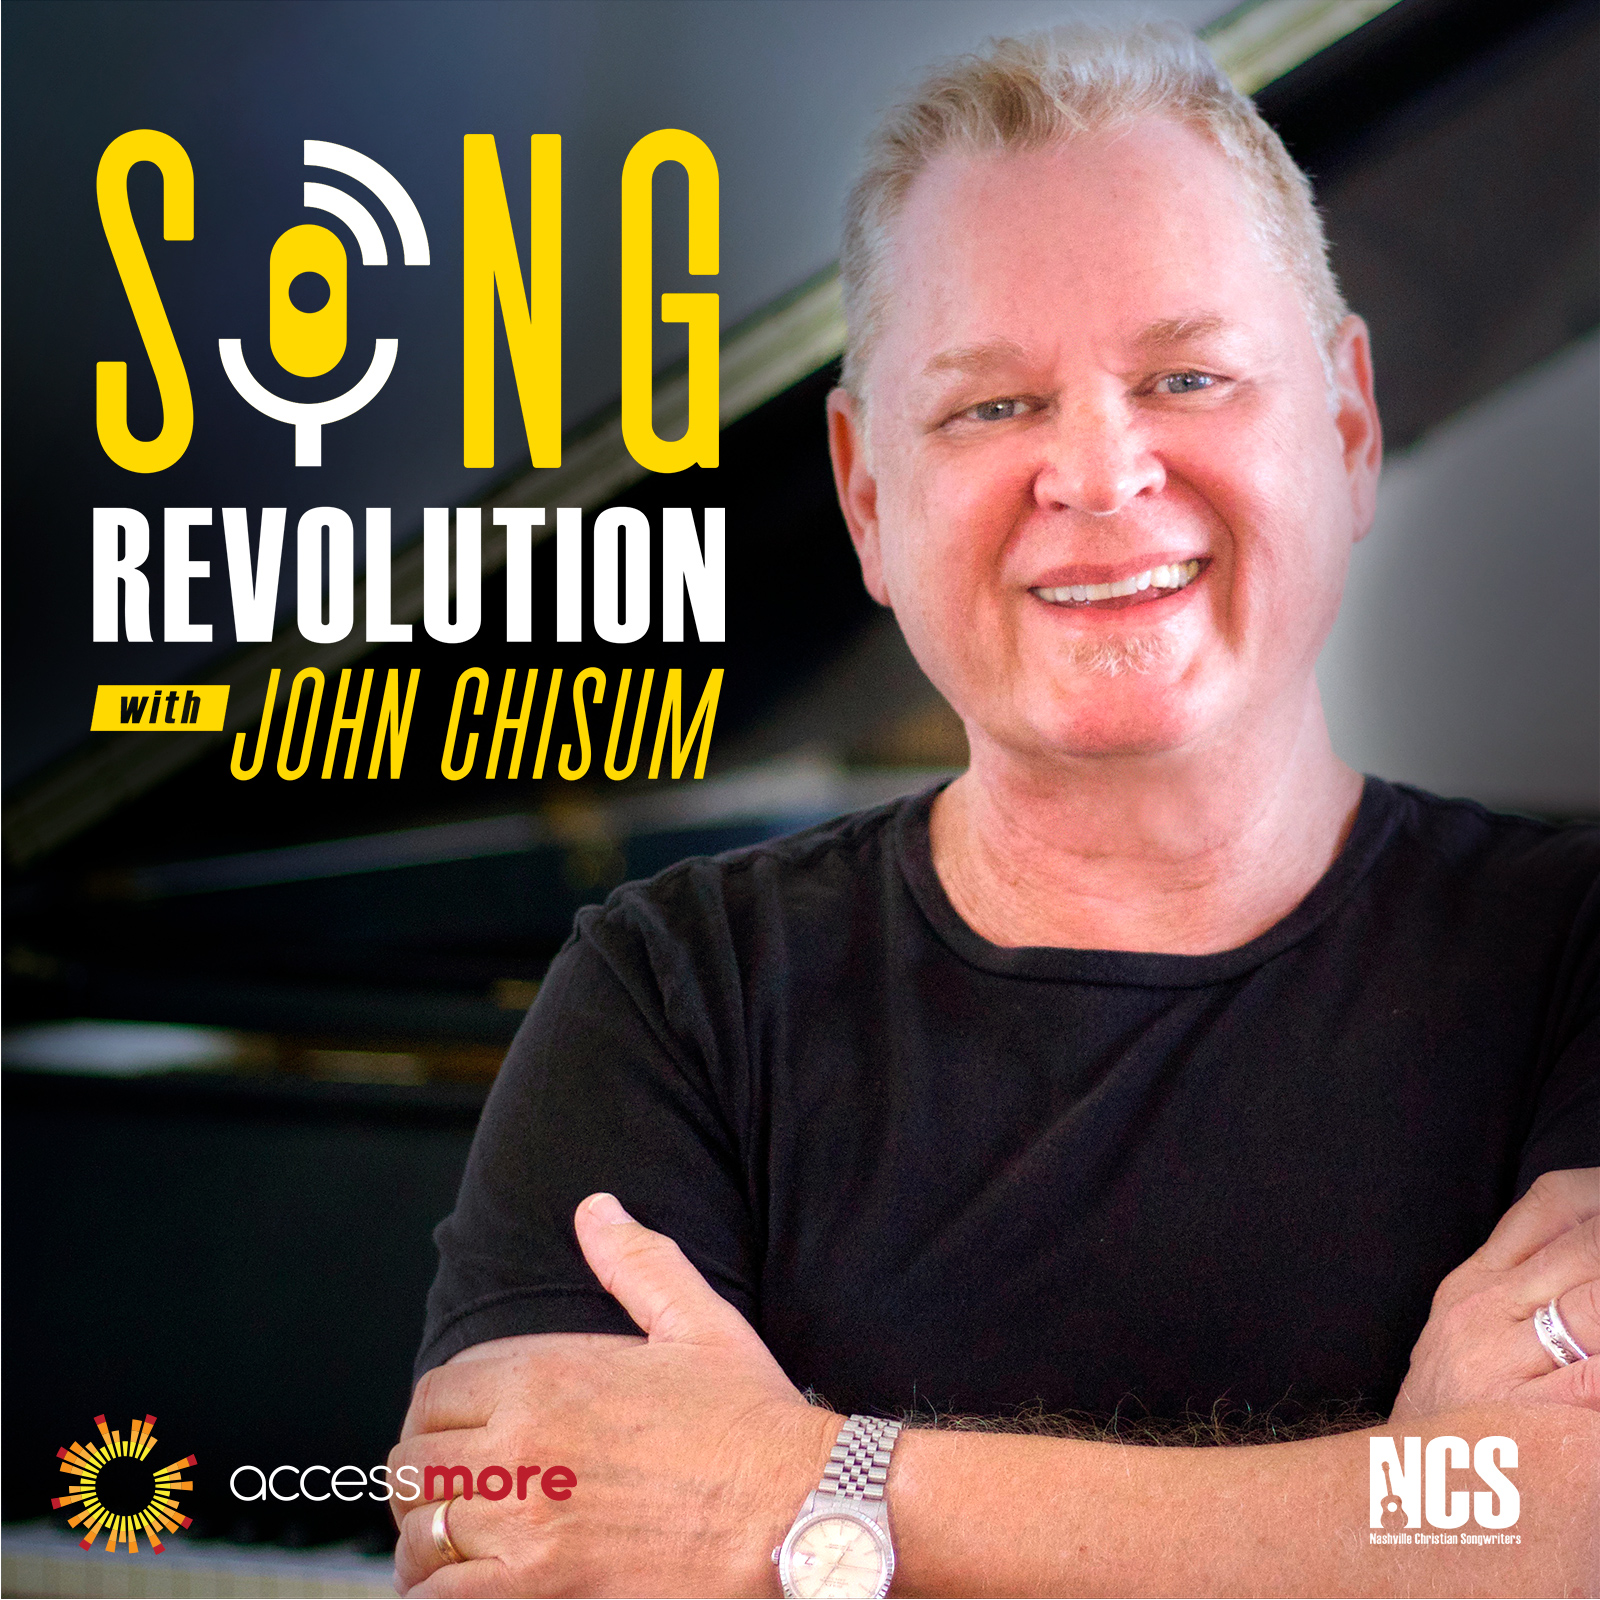 Dream Your Way to Songwriting Success with John Chisum